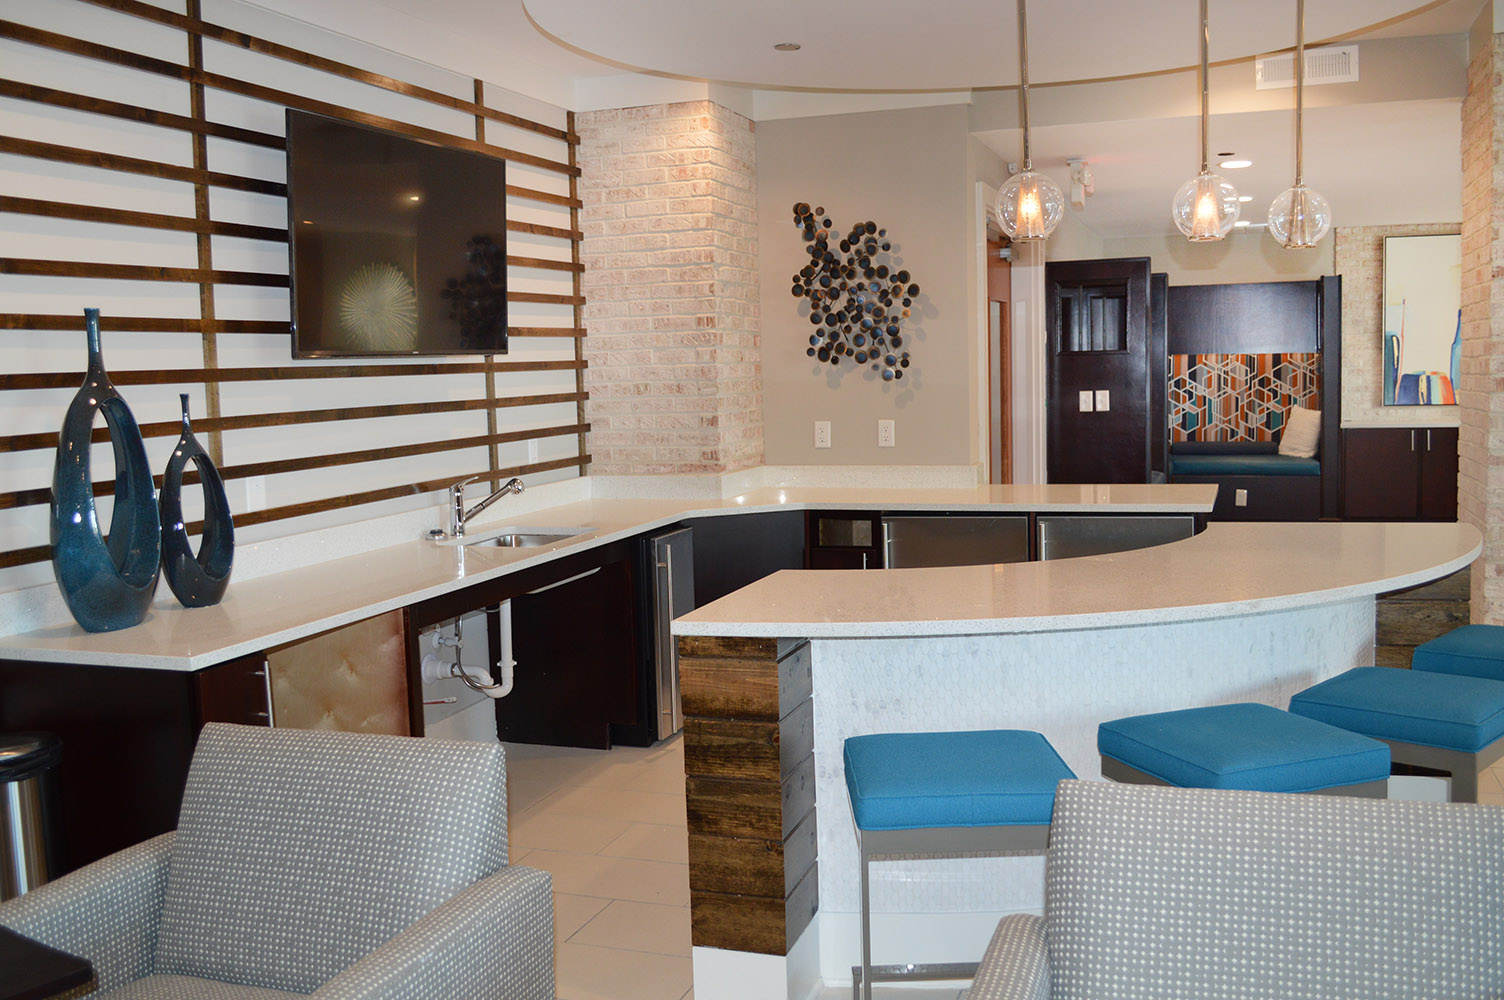 Comfortable commons area featuring White quartz countertops and tile bar front by East Coast Granite